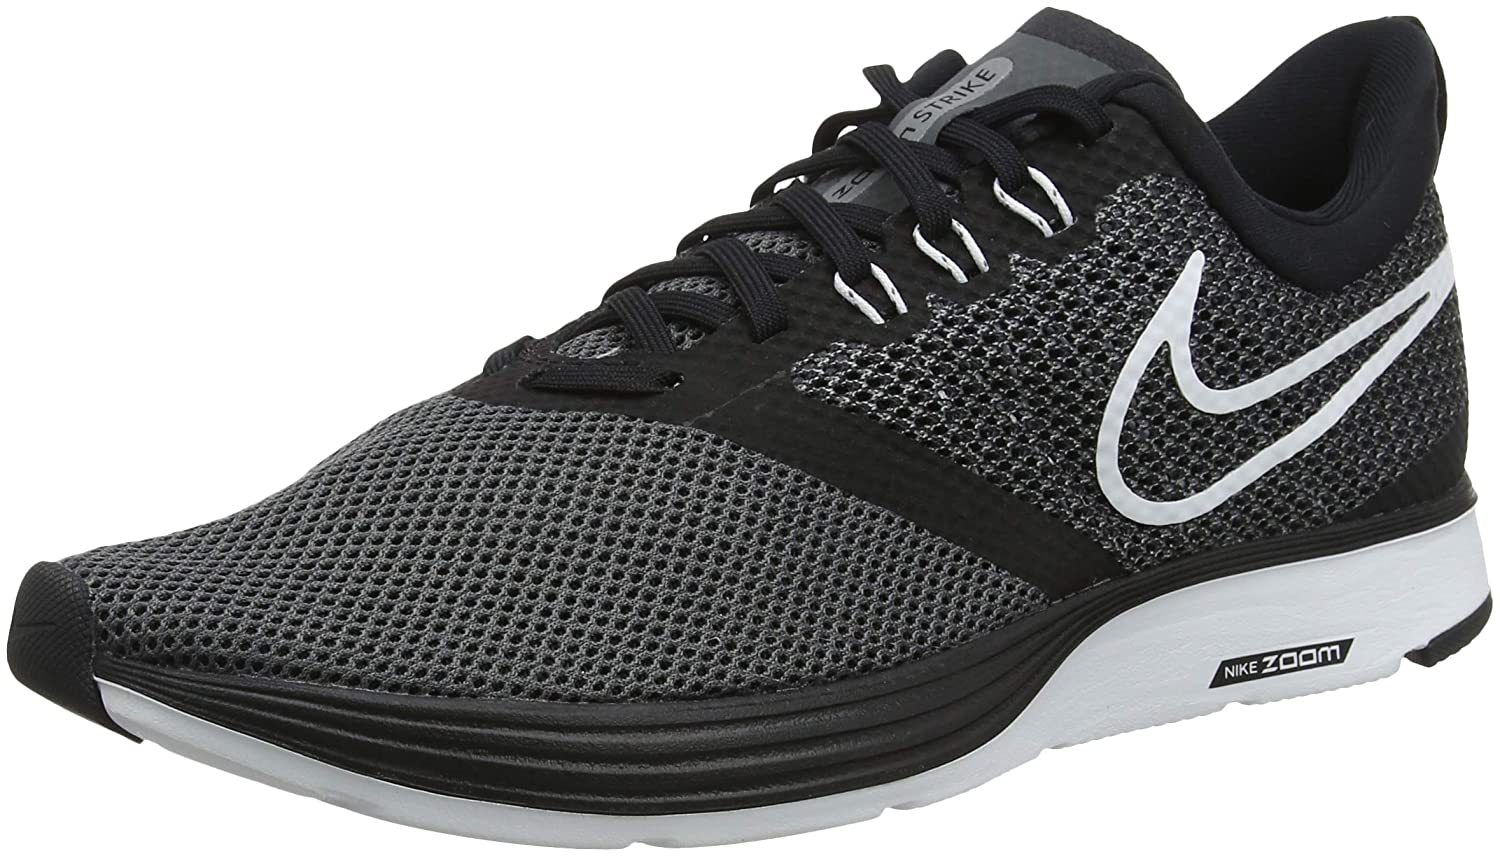 7740c4cf4664 Amazon.com  Nike Men s Zoom Strike Running Shoes  Nike  Shoes